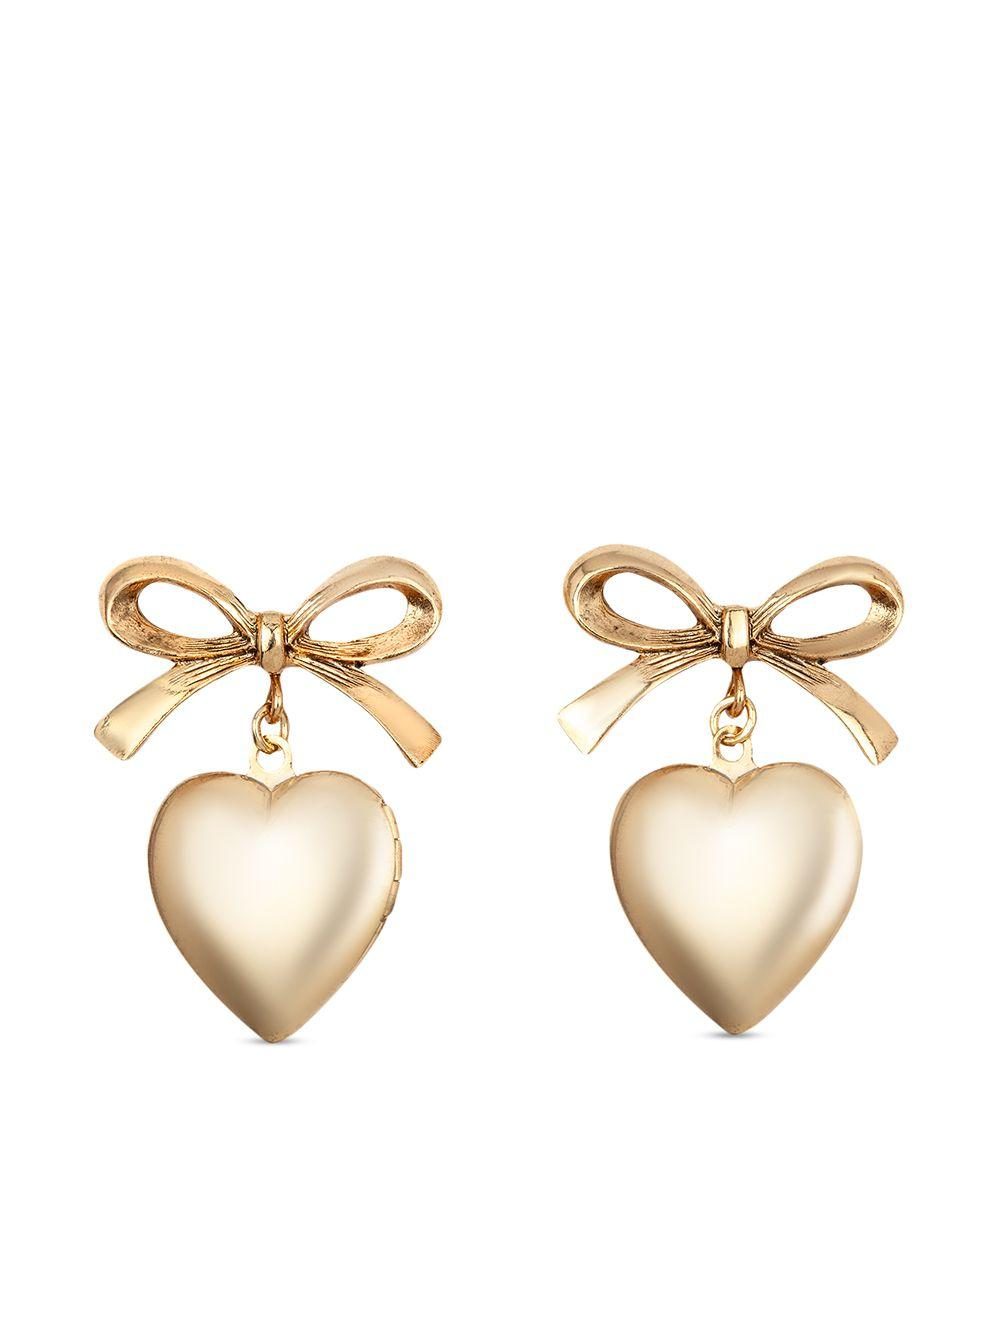 Chriselle Heart and Bow Earrings